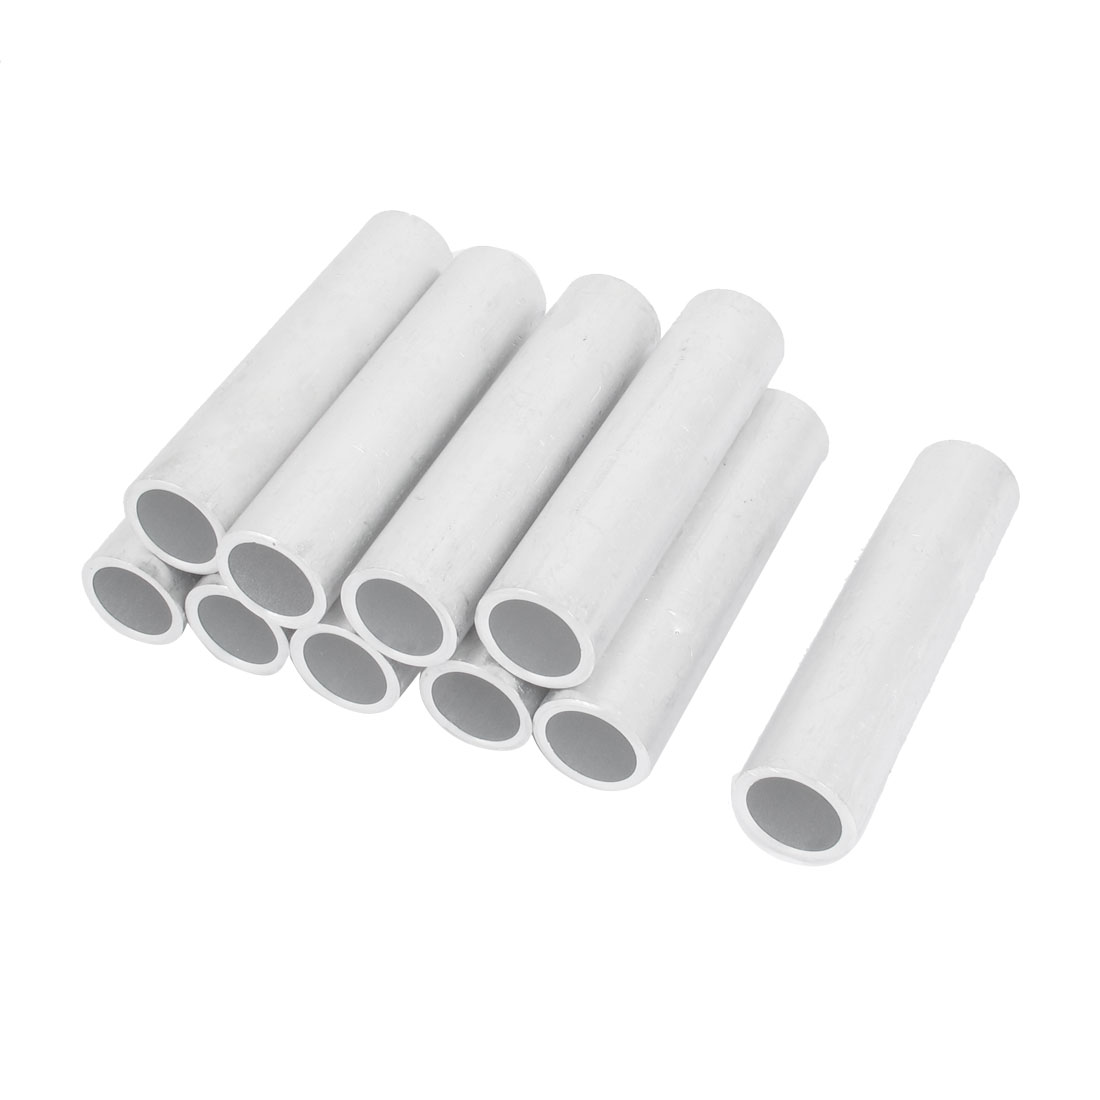 10PCS 20mm Inner Dia Straight Passing Through Aluminum Connecting Tube